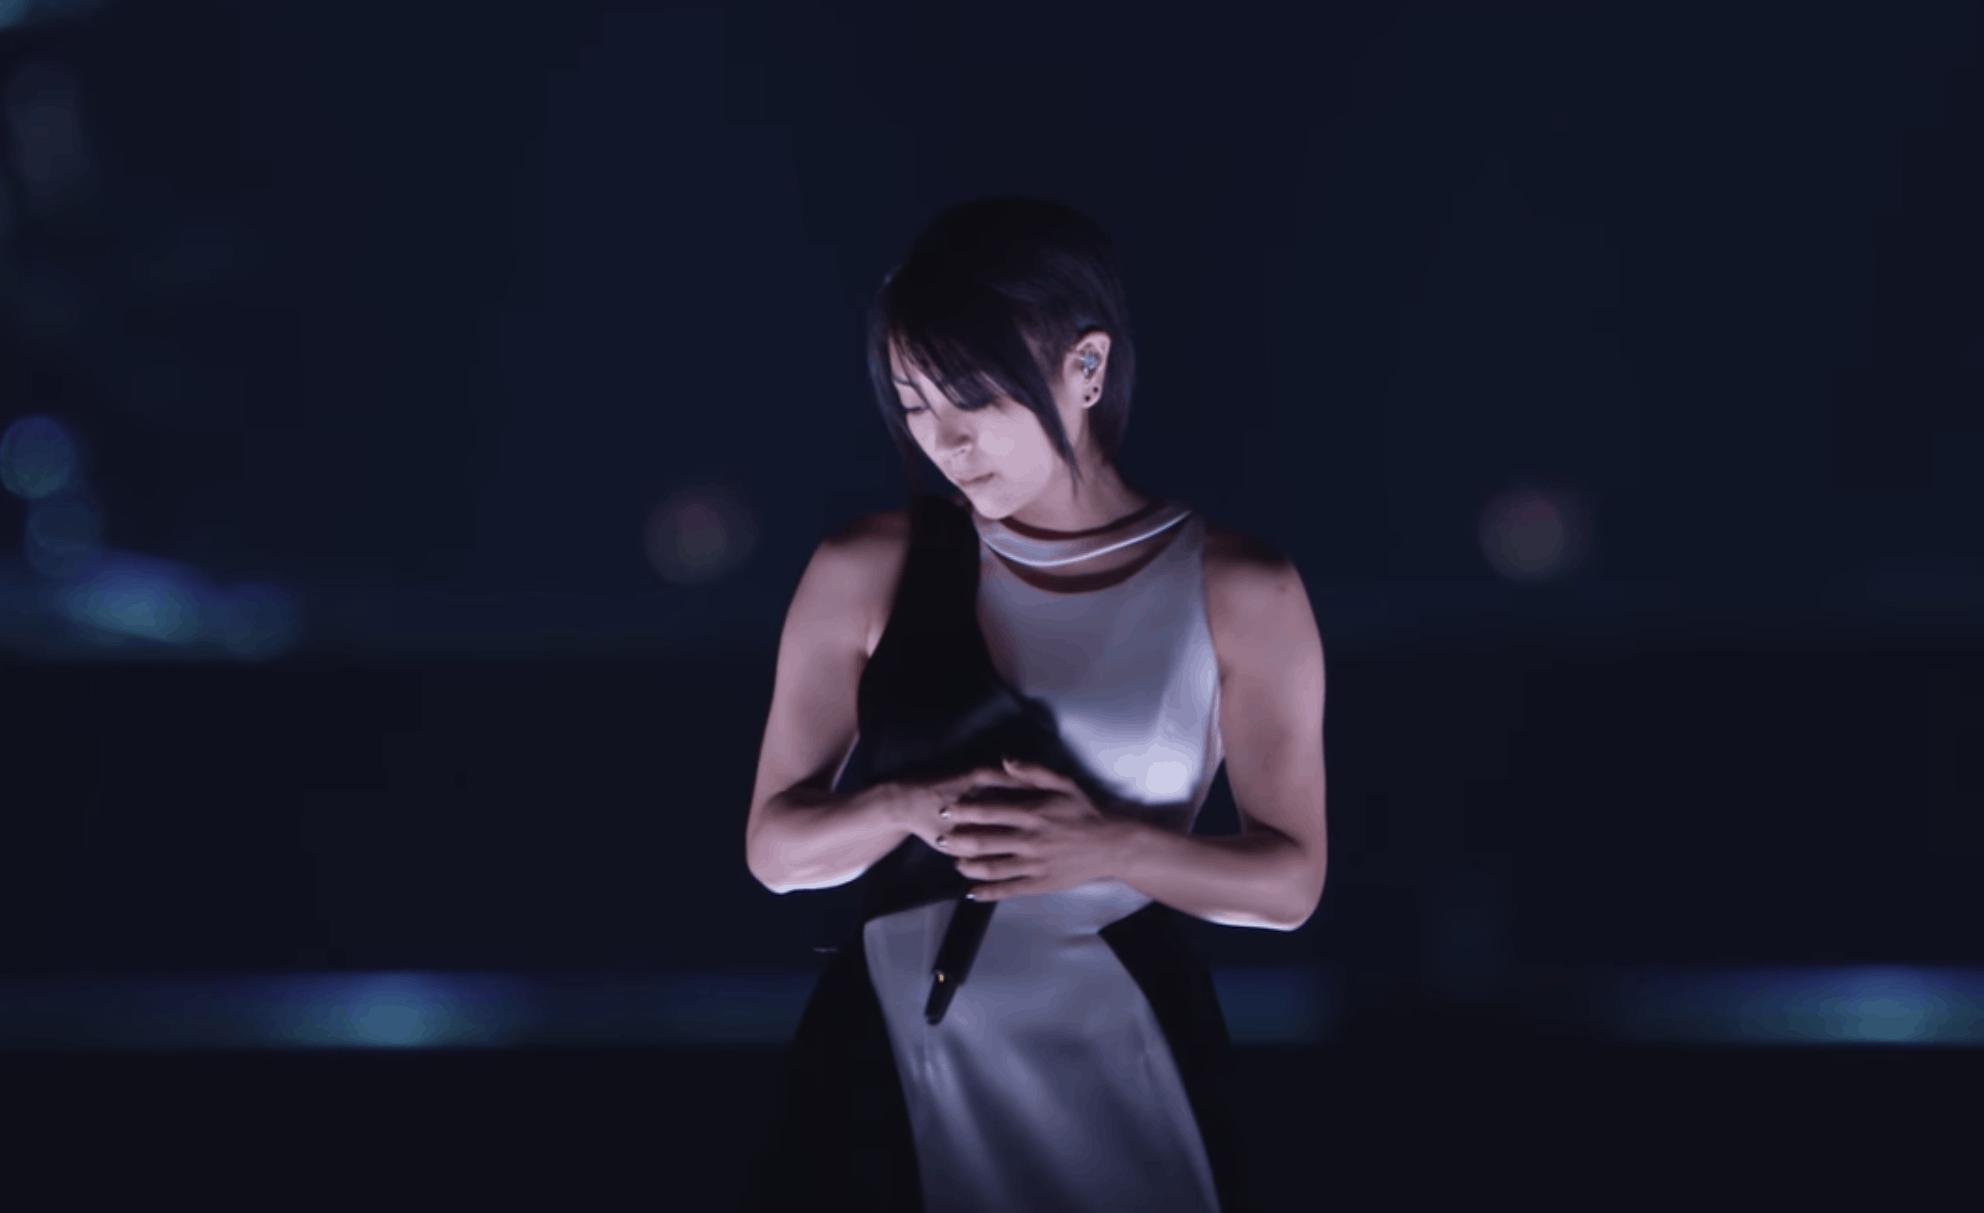 Utada Hikaru Laughter in the Dark Tour